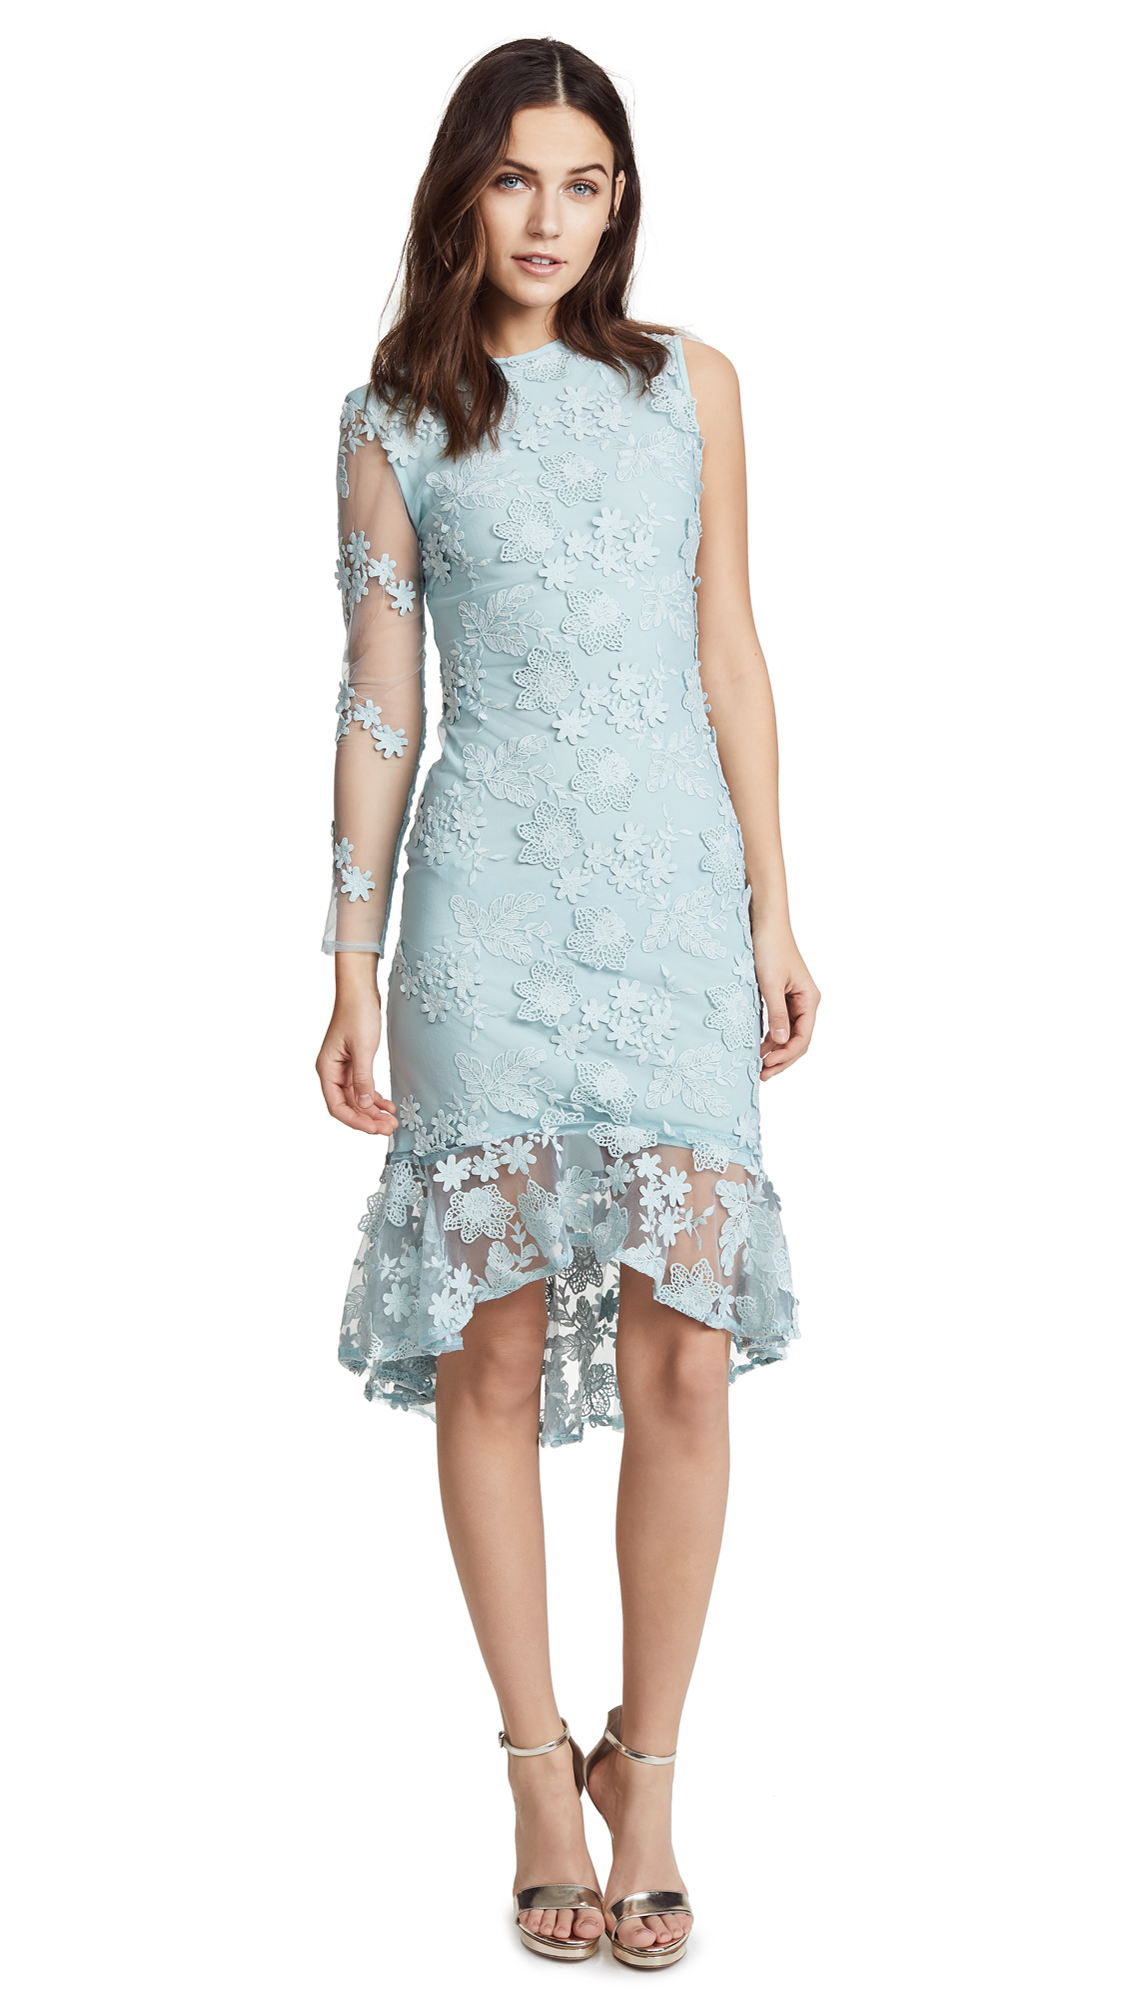 Cynthia Rowley Skydive Lace Midi Dress In Frost